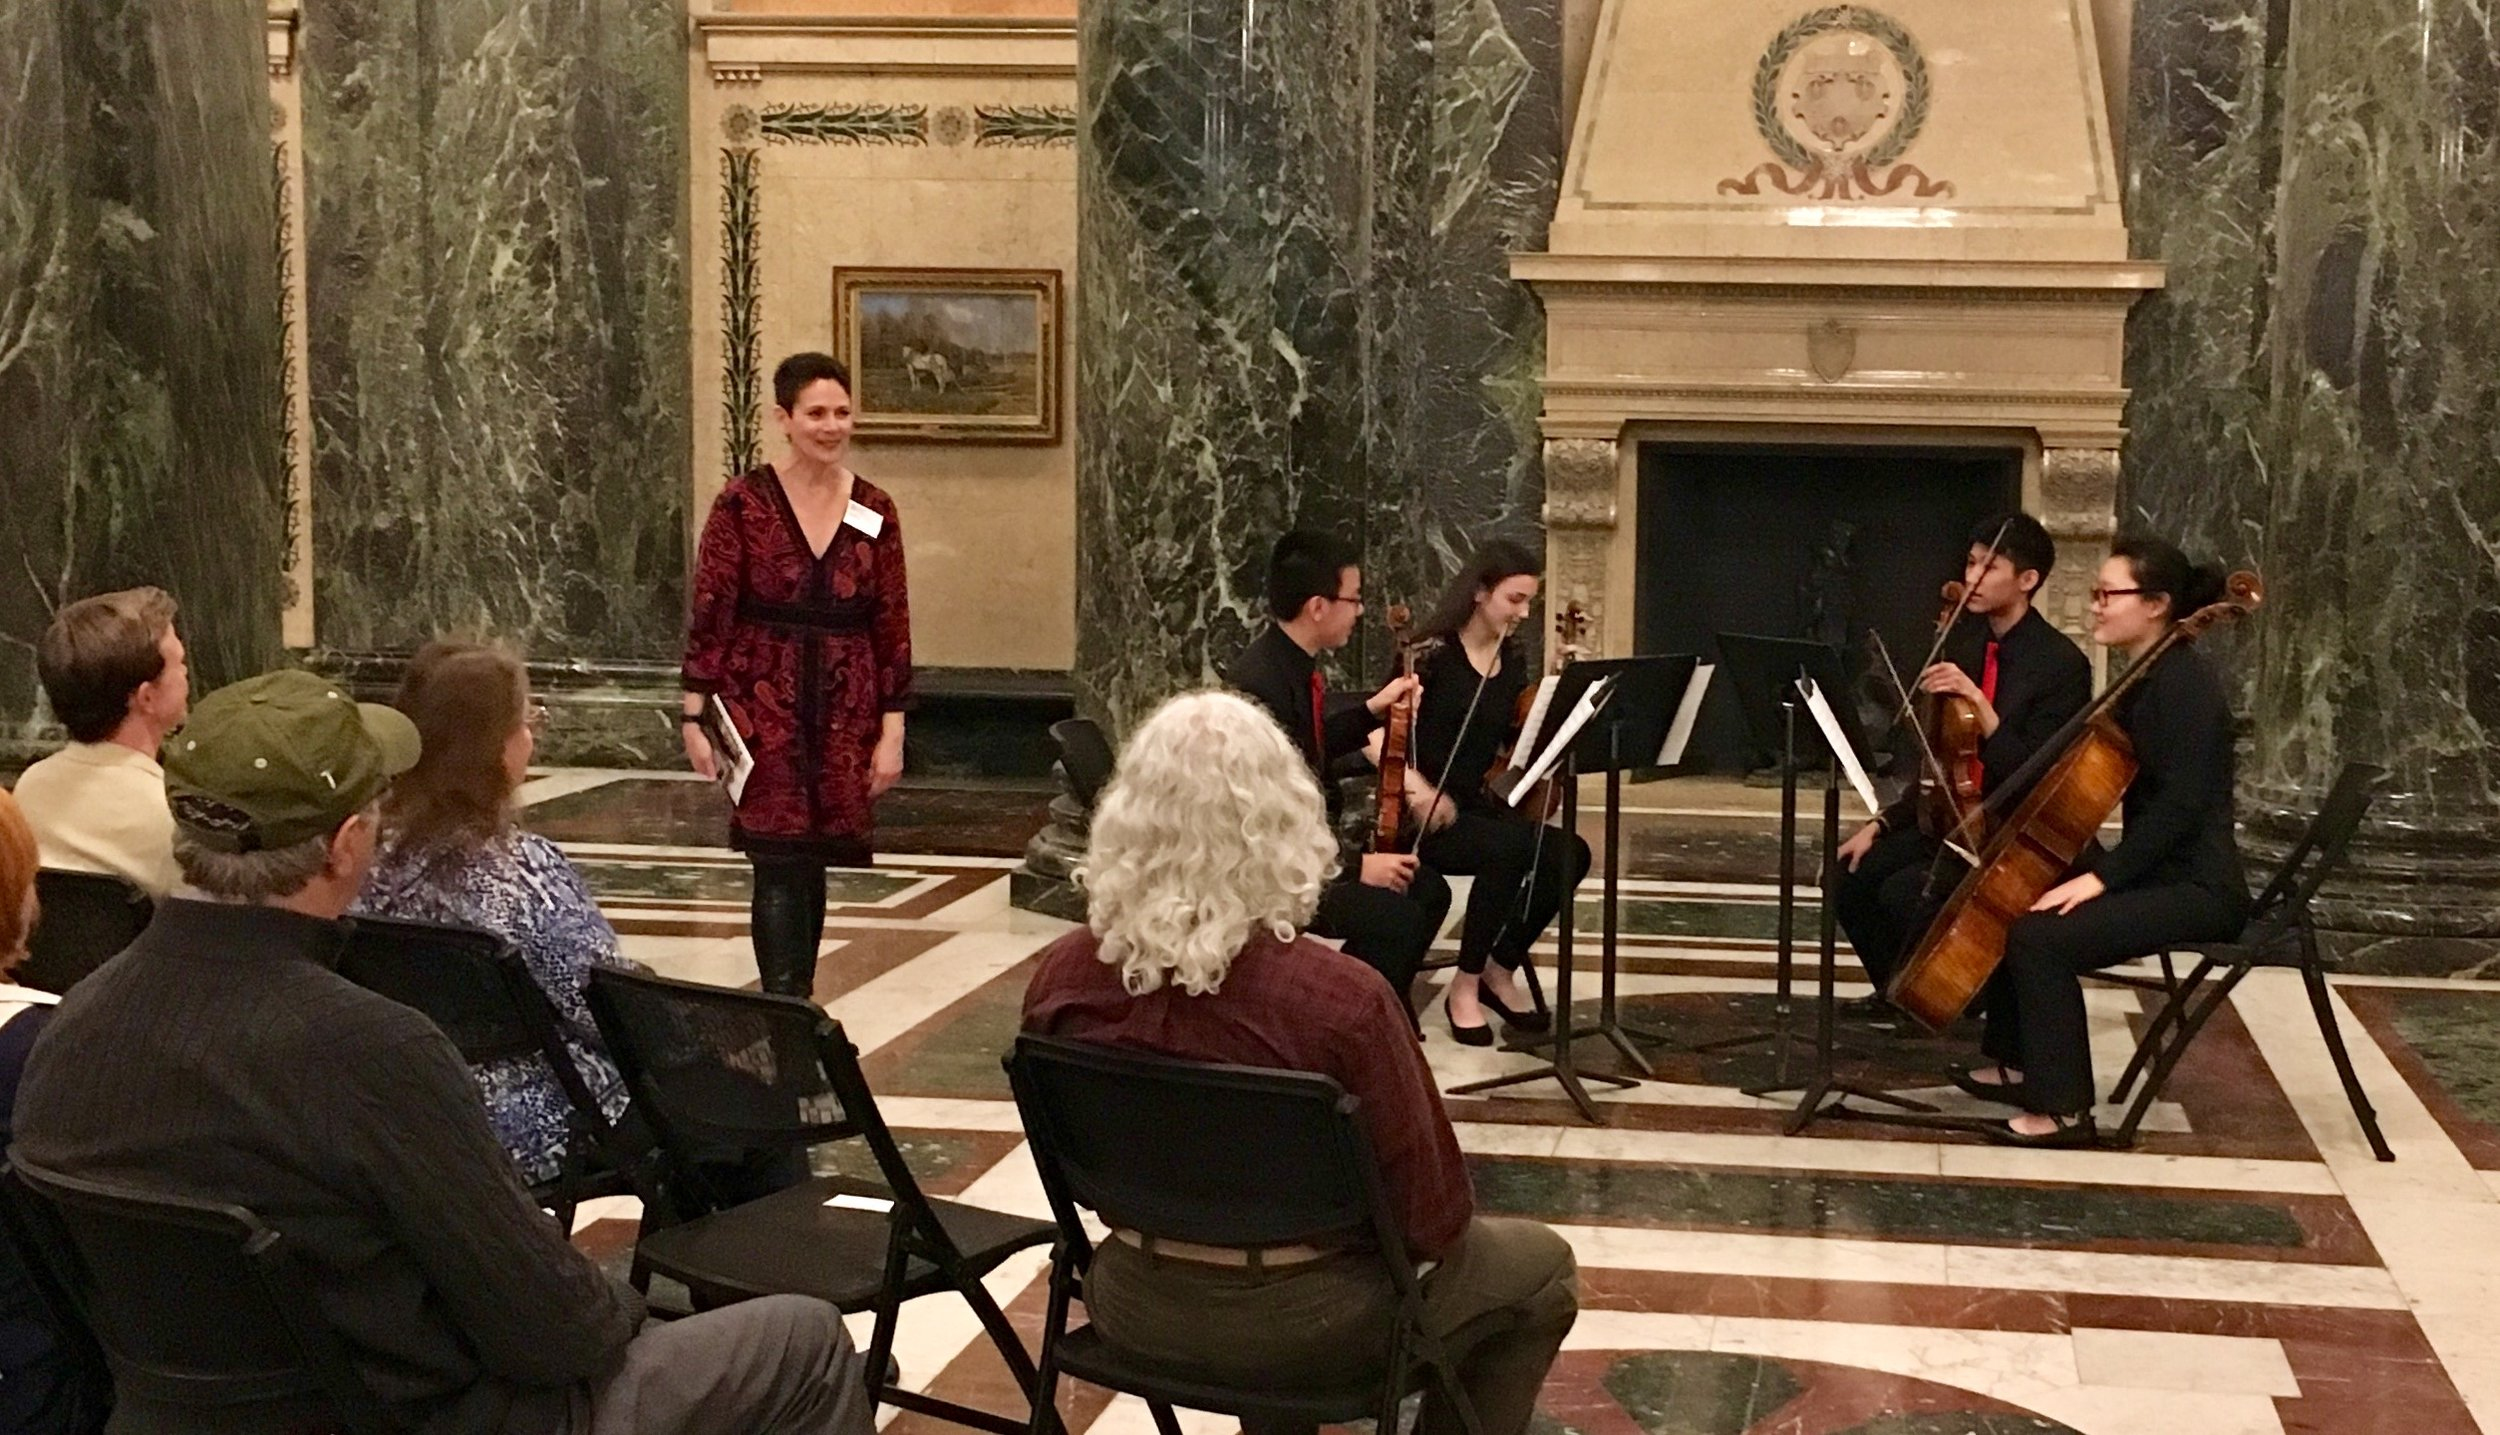 Chamber Music Pittsburgh - Monday, April 8, 2019The Vivo Quartet - Enoch, Carolyn, Futen, and Yunshu - performed in the beautiful foyer of Carnegie Music Hall in Oakland, as the winners of this year's Montgomery Fellowship! The Montgomery Fellowship winning group each year studies chamber music with PSO Principal Second Violin Jeremy Black.